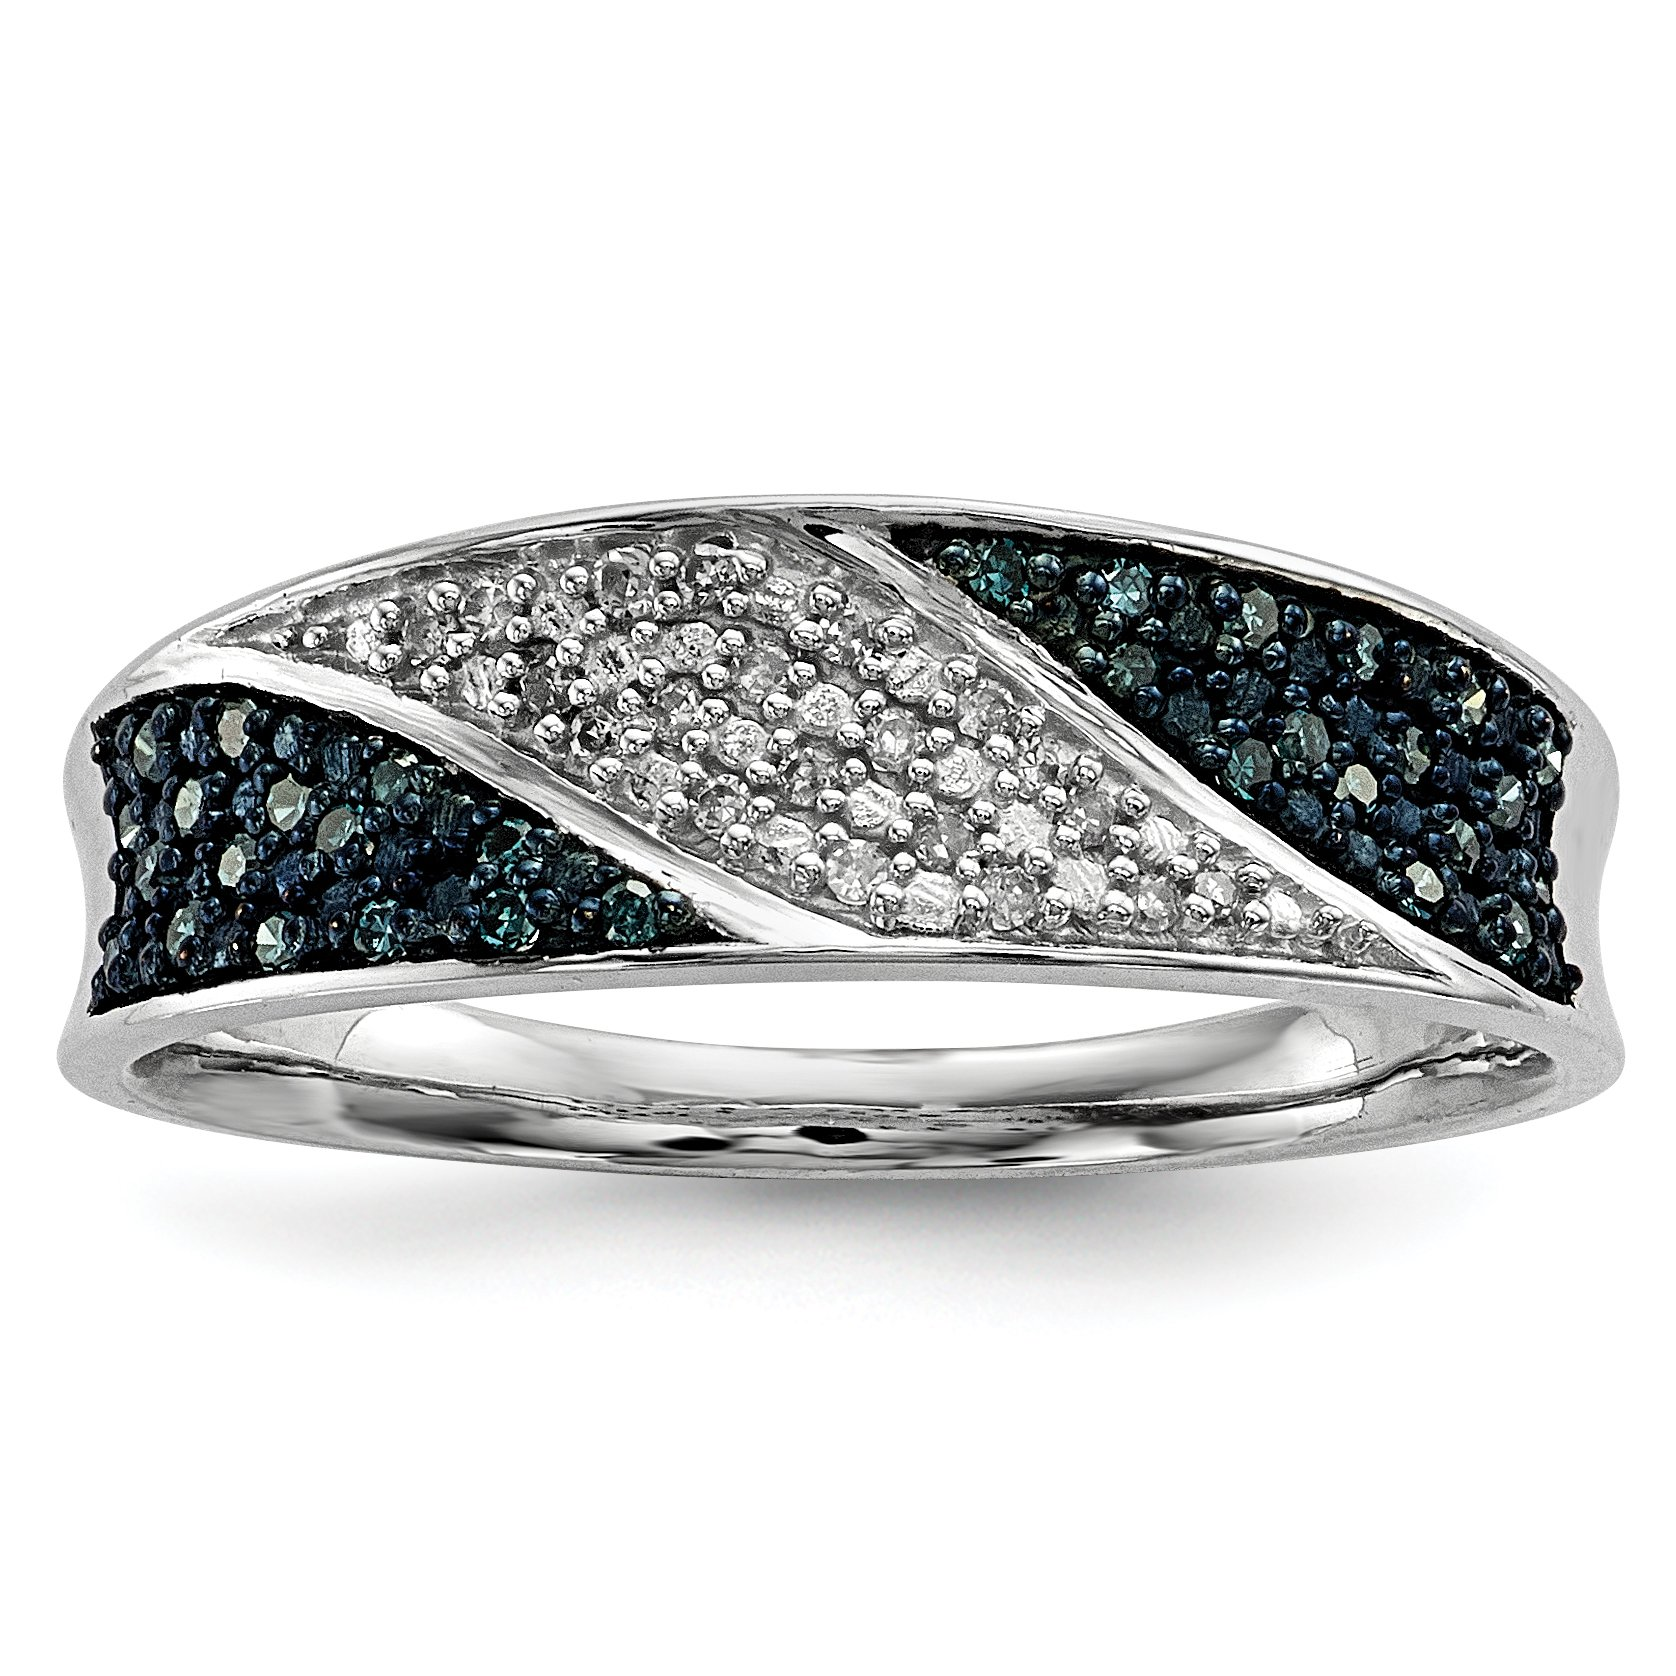 ICE CARATS 925 Sterling Silver Blue White Diamond Band Ring Size 7.00 Fine Jewelry Gift Set For Women Heart